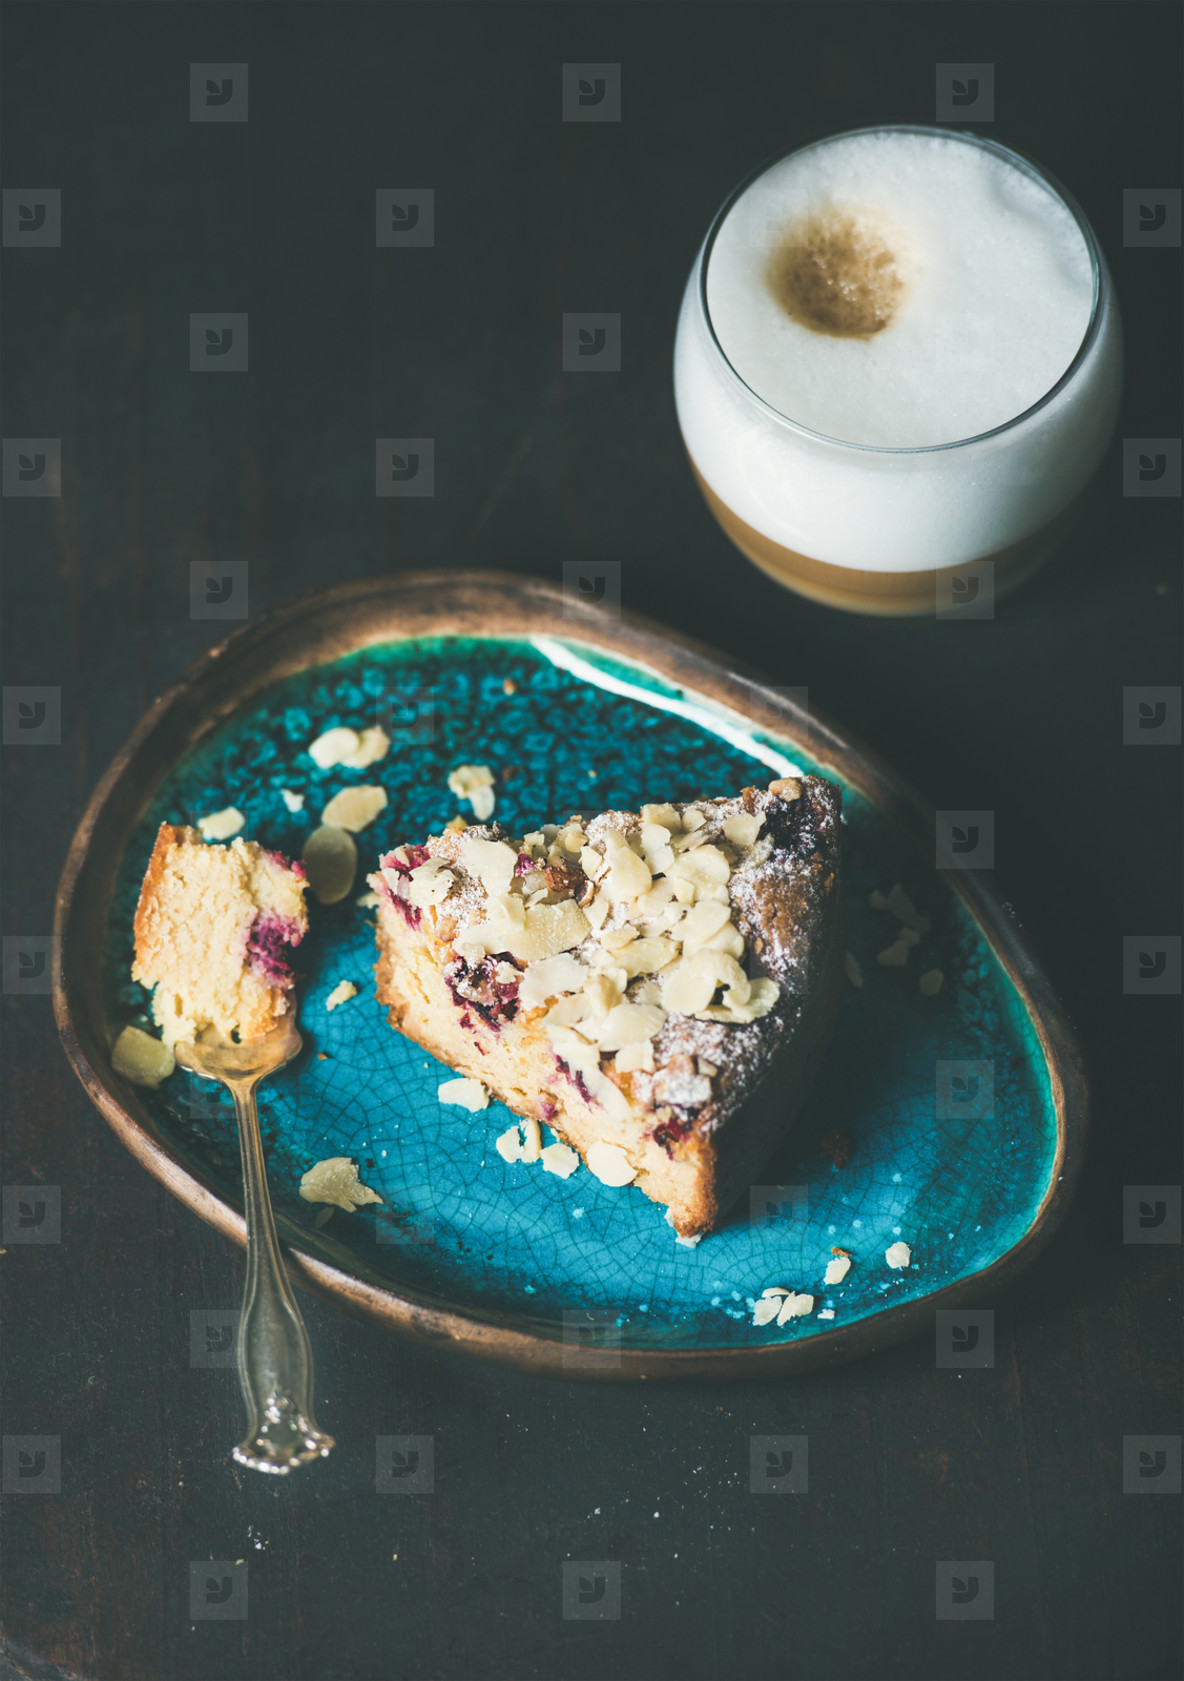 Piece of lemon  ricotta  almond  raspberry cake and coffee